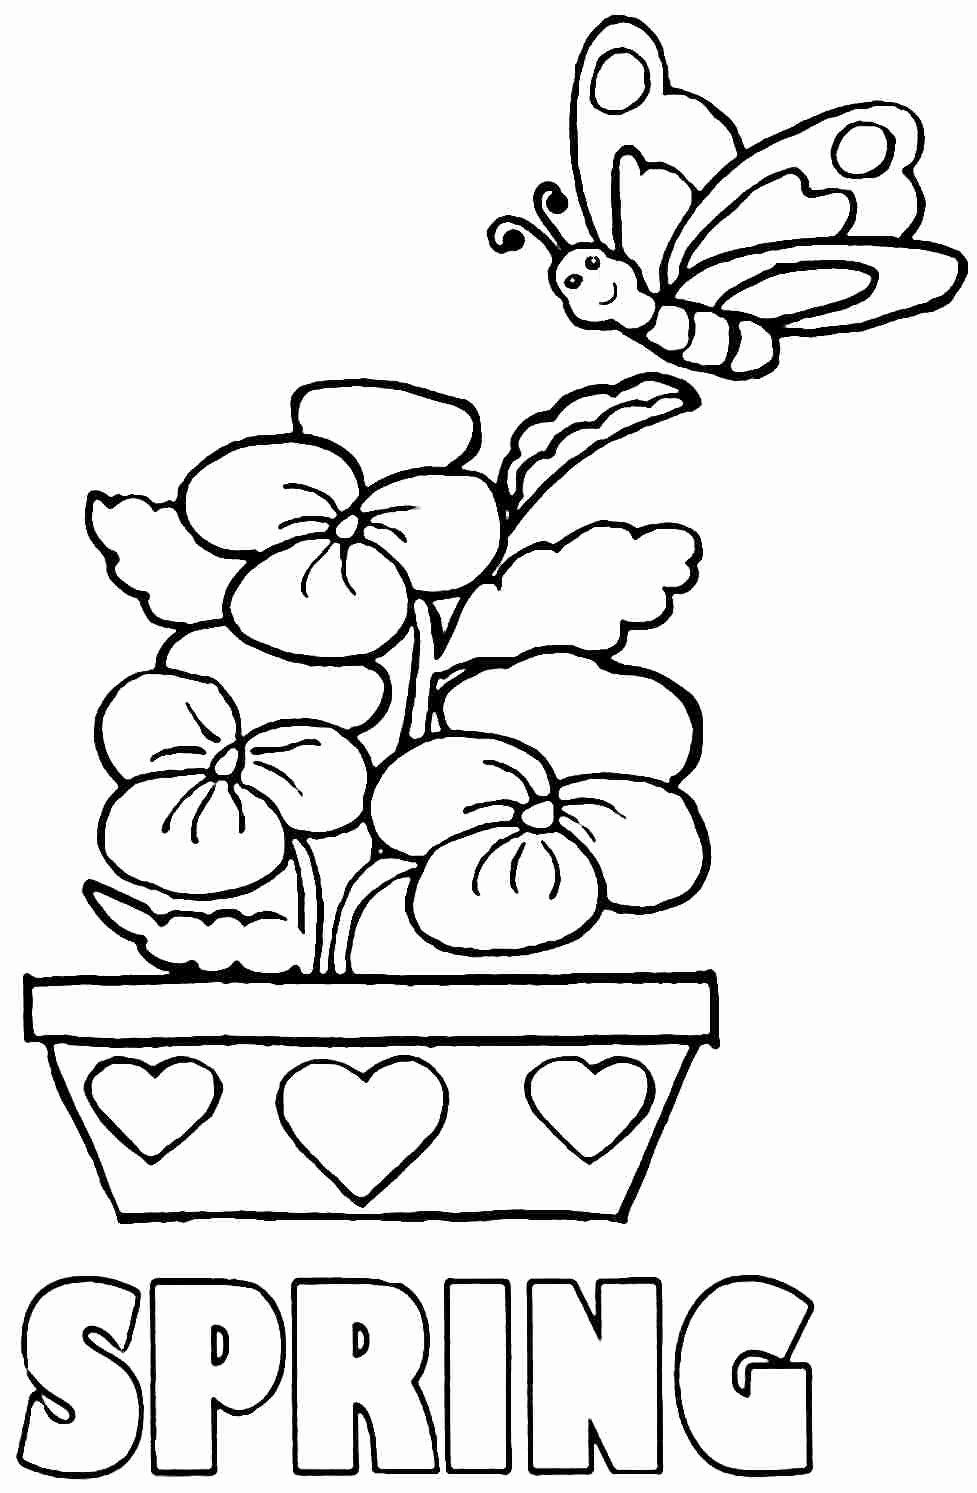 Free Spring Coloring Sheets Printable In 2020 Spring Coloring